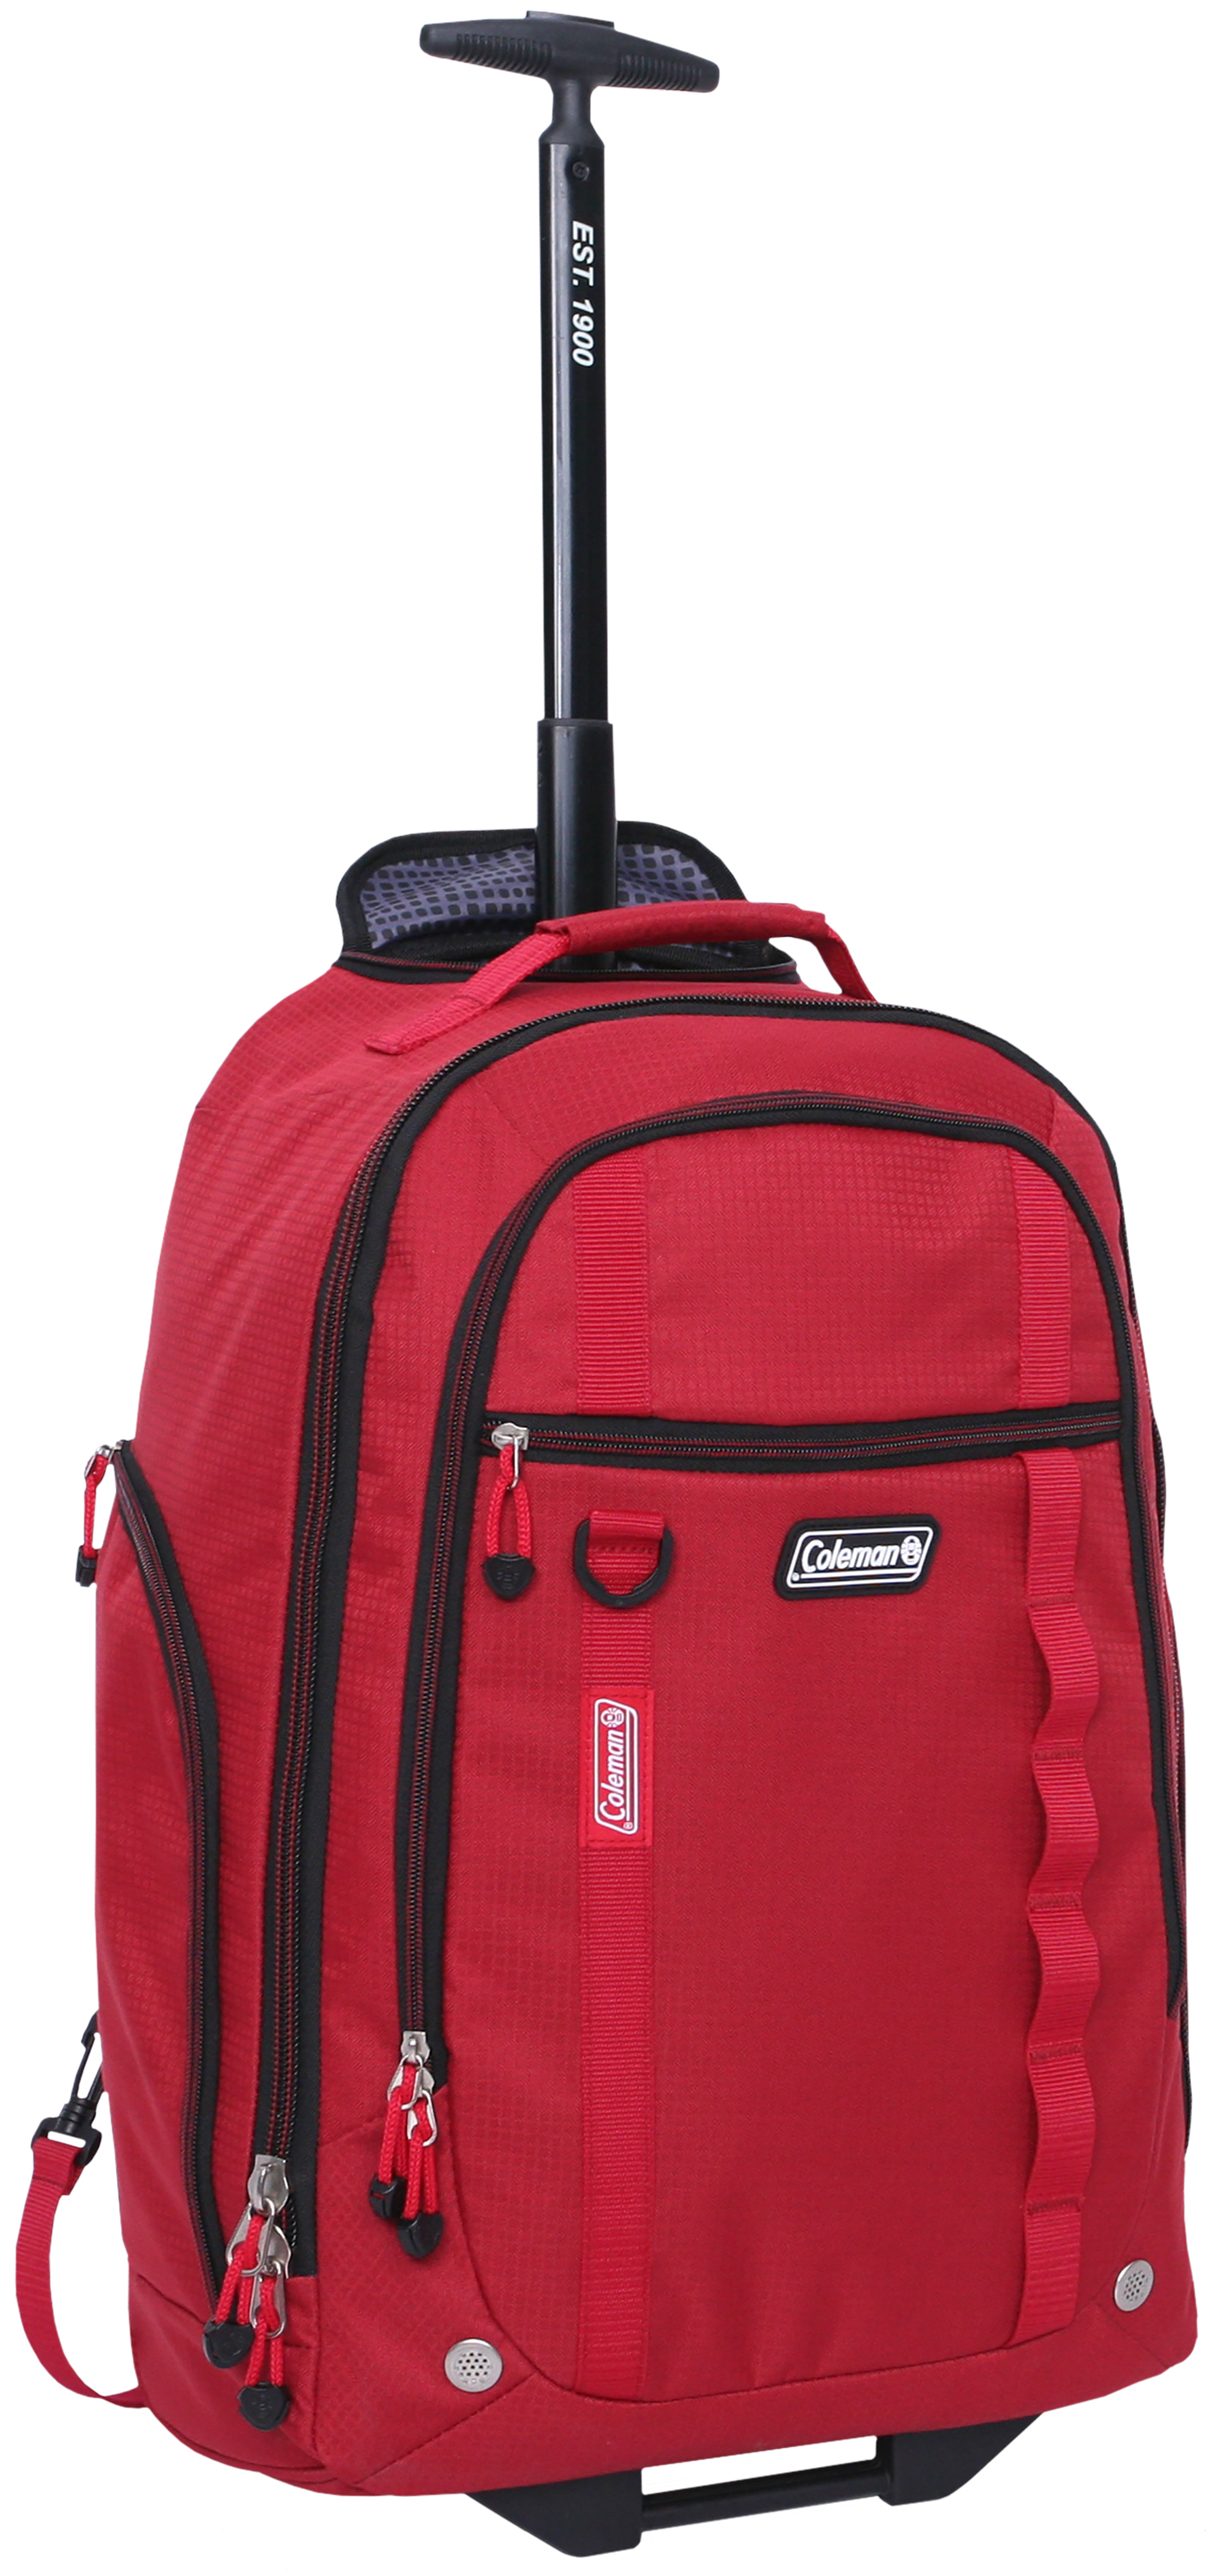 "Coleman 22"" Rolling Travel Backpack w  Telescopic Handle, Red by Olivet International Inc"